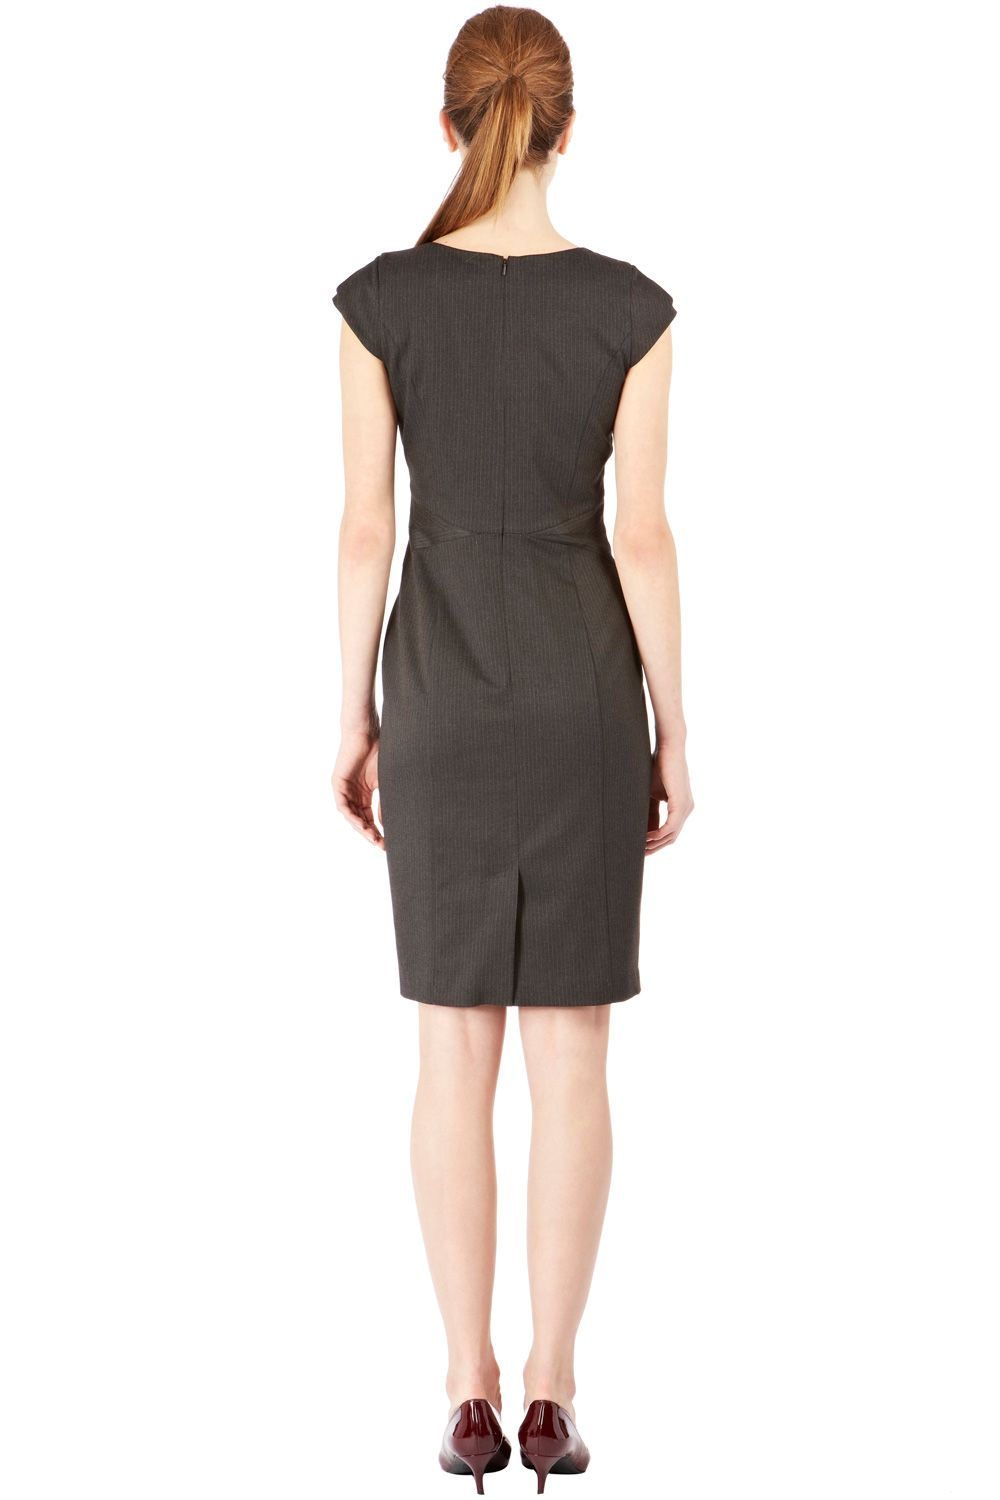 Seam detail workwear dress